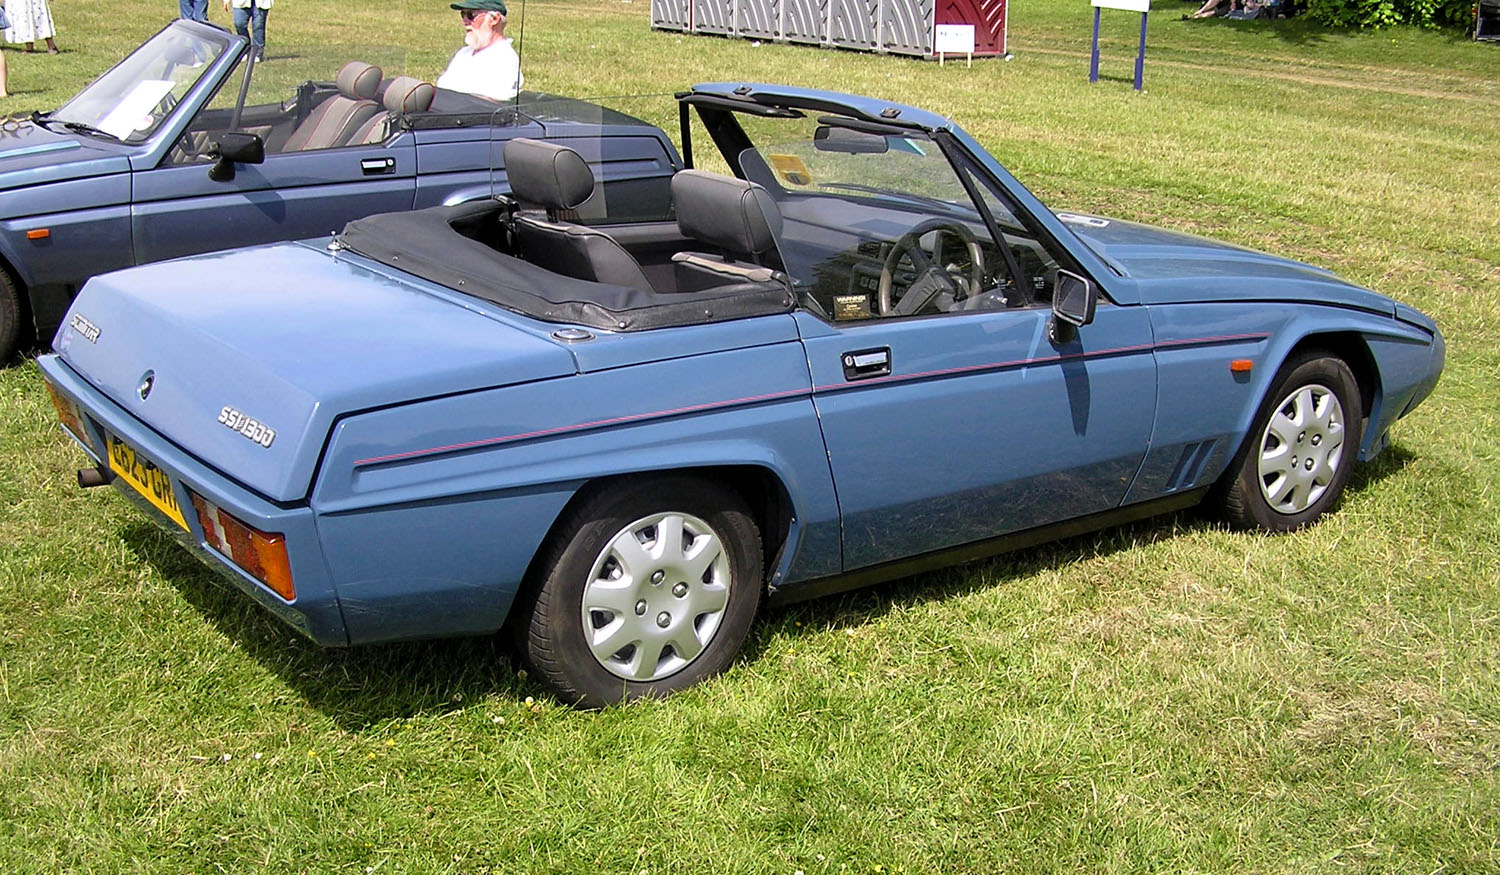 File:1988.reliant.scimitar.ssi.1300.arp.jpg - Wikimedia Commons